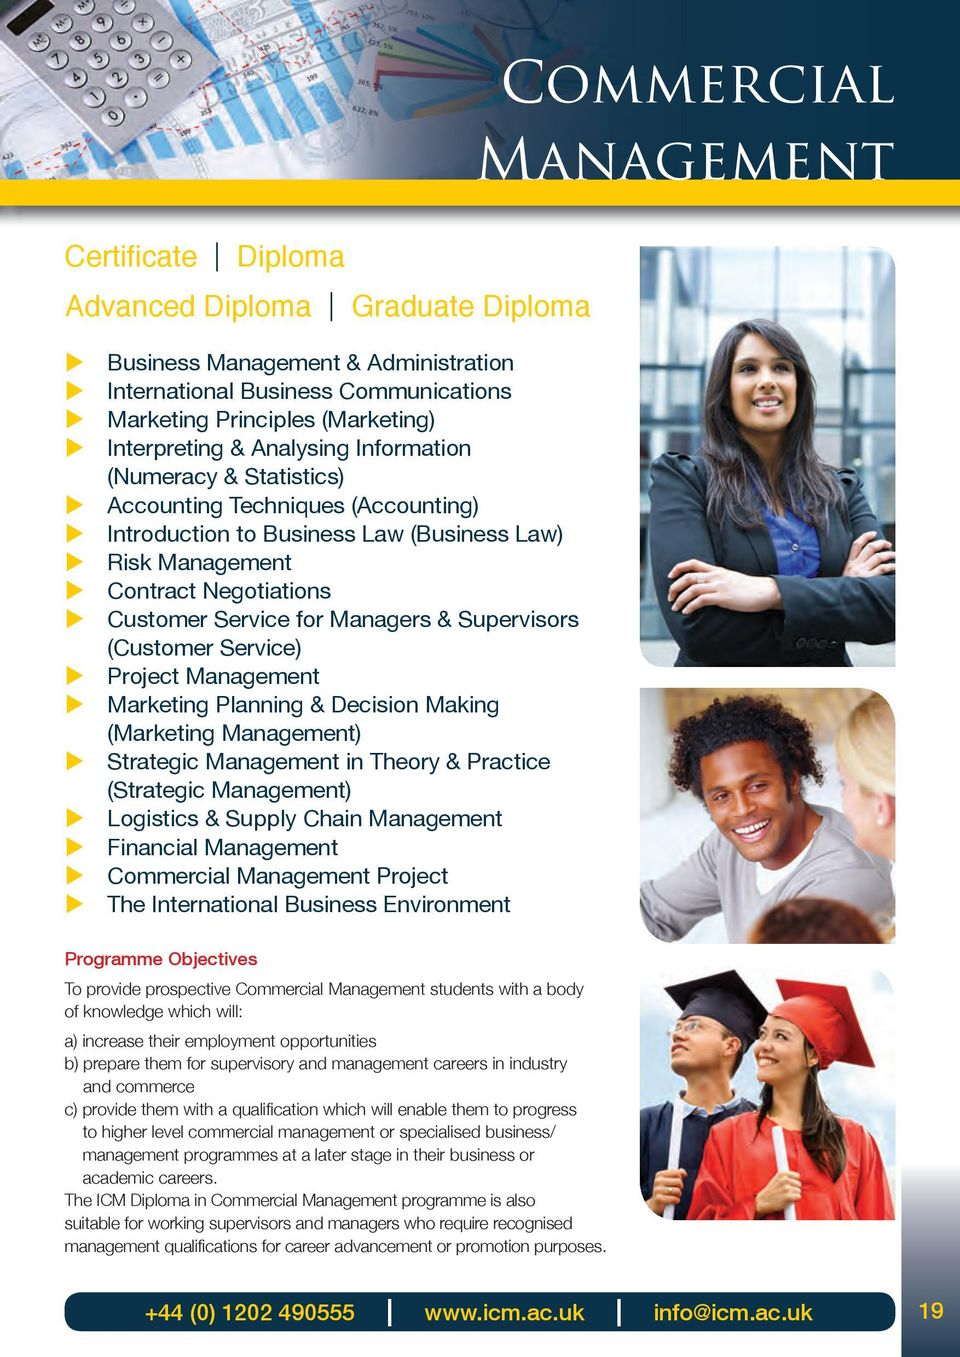 (Cstomer Service) Project Management Marketing Planning & Decision Making (Marketing Management) Strategic Management in Theory & Practice (Strategic Management) Logistics & Spply Chain Management